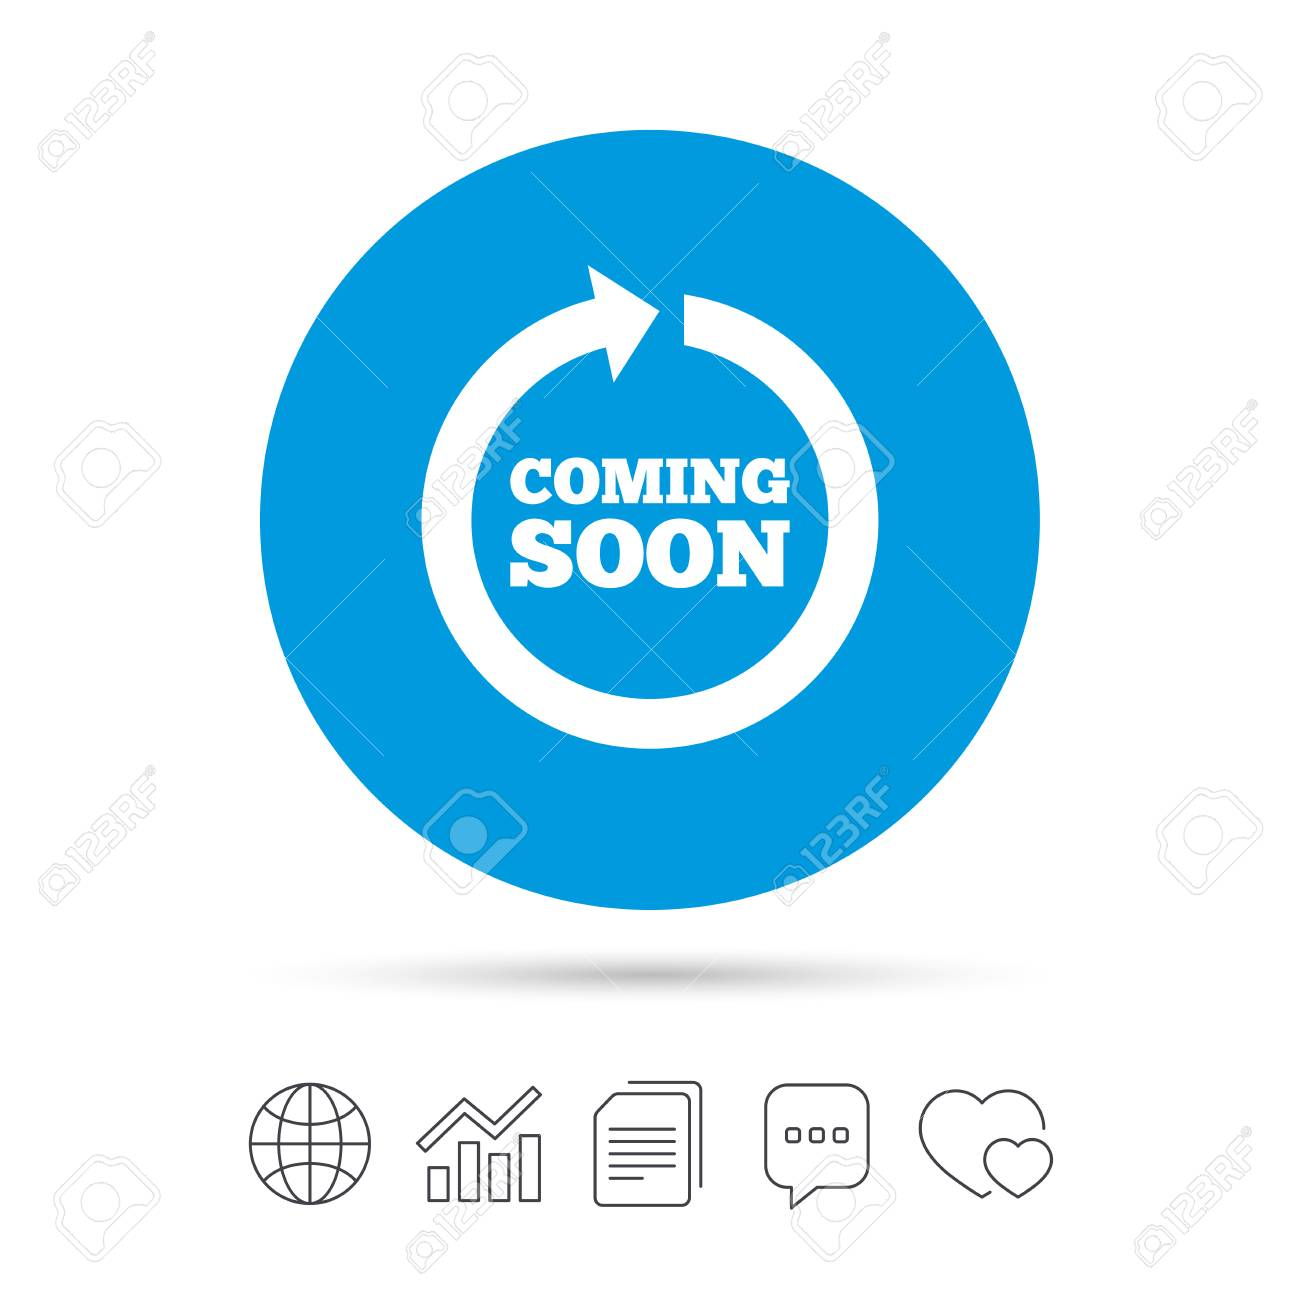 coming soon sign icon promotion announcement symbol copy files